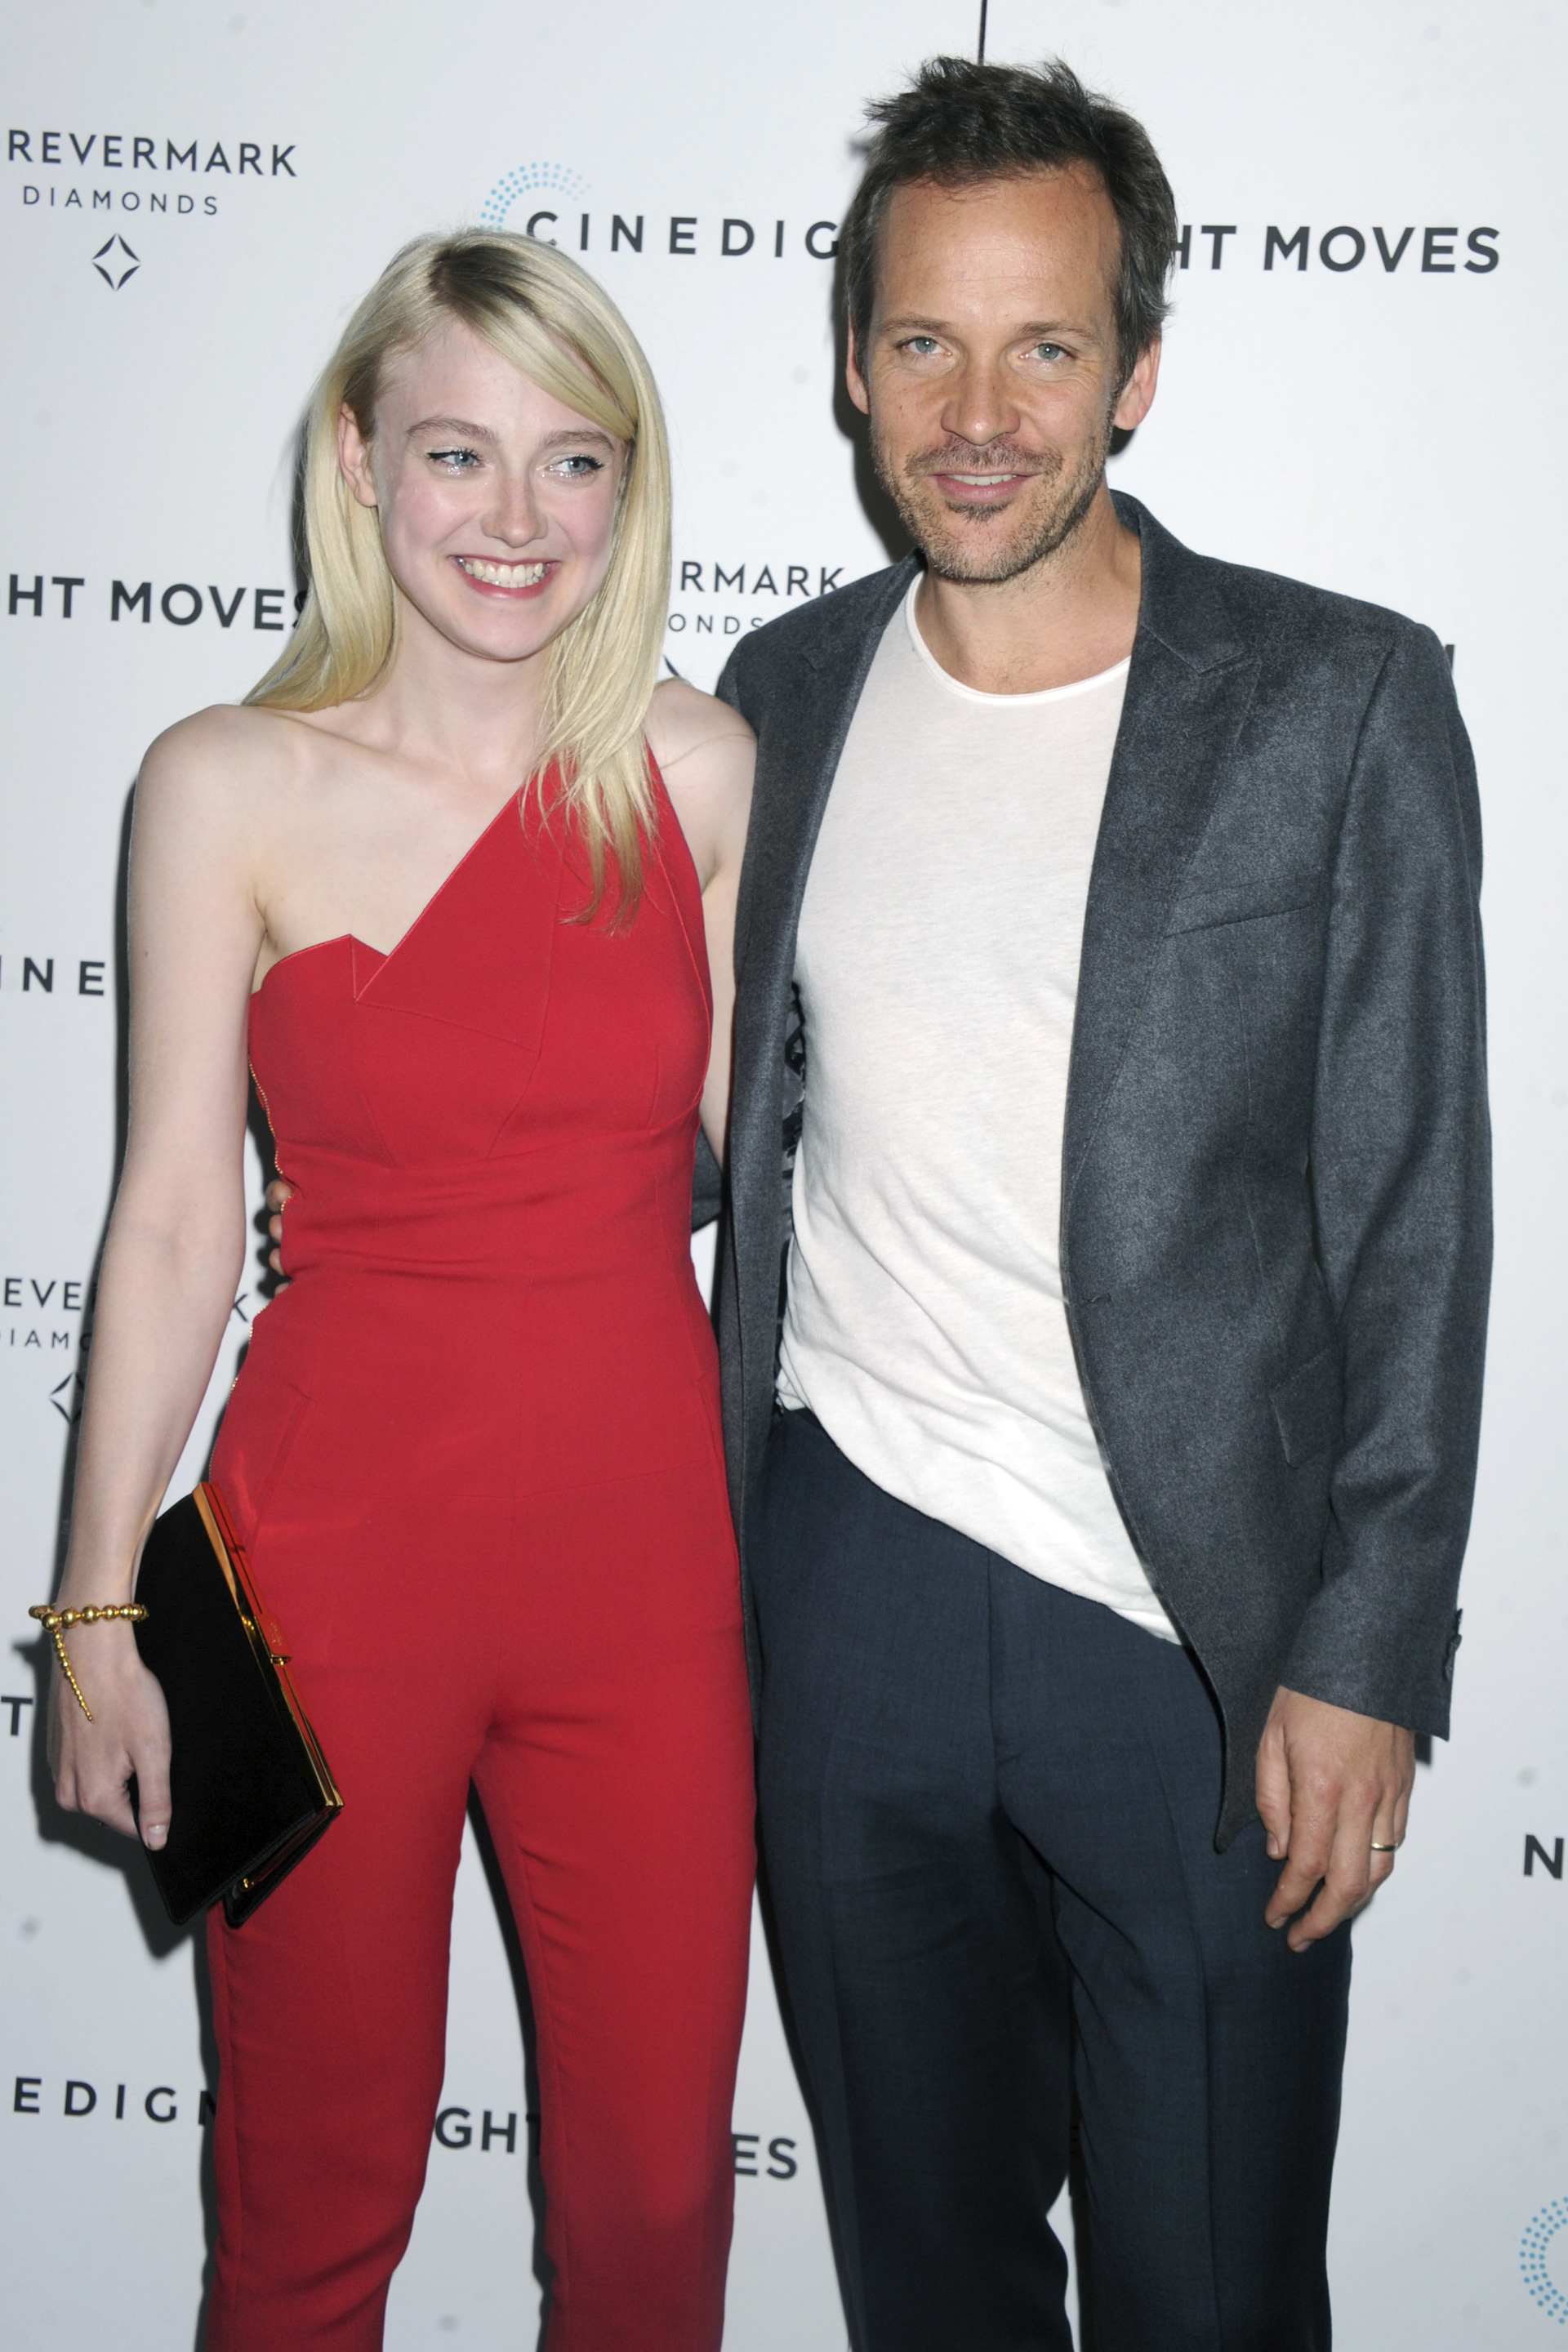 Dakota Fanning New York premiere of her new movie Night Moves wearing a red jumpsuit with Peter Sarsgaard